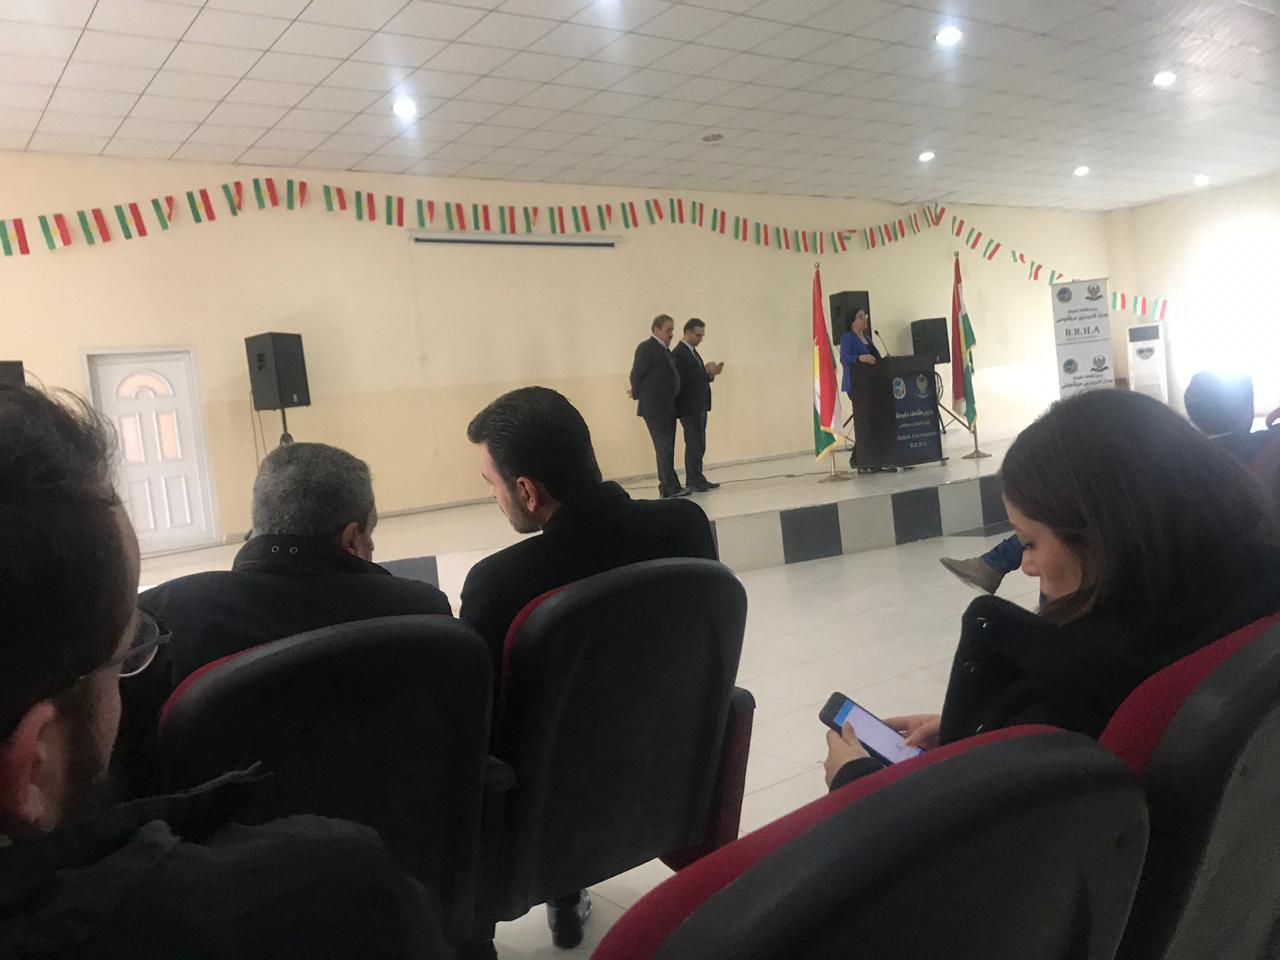 Domiz 1 Refugees Camp session- R-SOS Units opening // Duhok (Iraq) - 15 January 2019